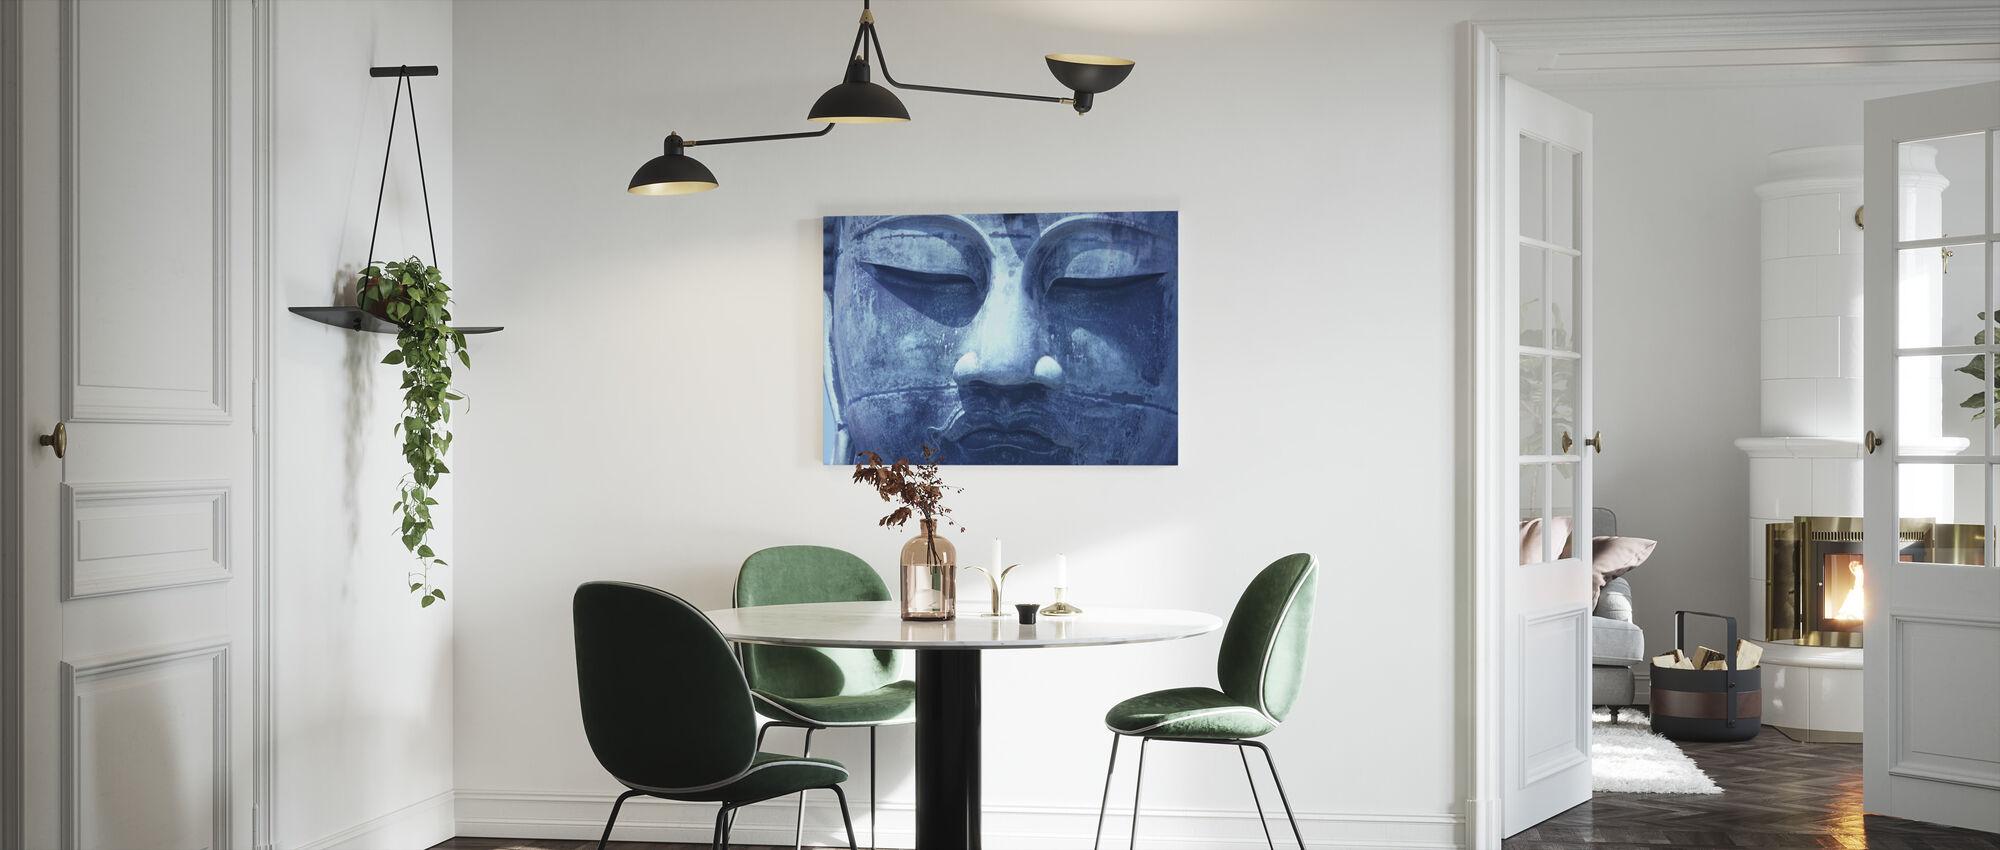 Blue Buddha - Canvas print - Kitchen